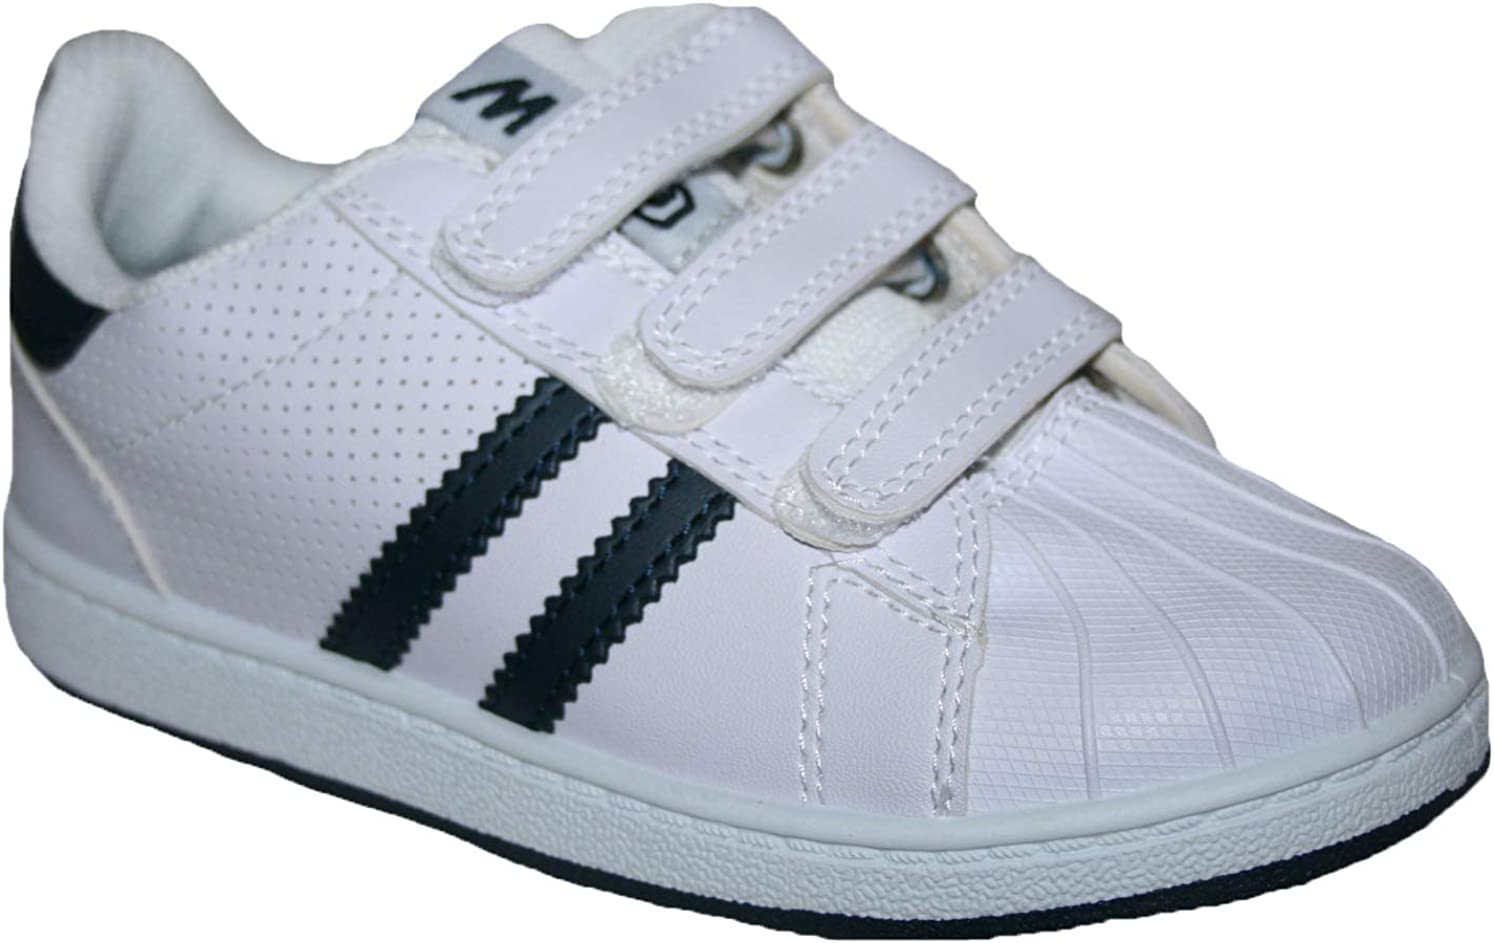 Footloose.Shoes New Kids Boys Girls School Shoes Trainers Pumps Football Tennis Hook and Loop Straps Sizes 8-2